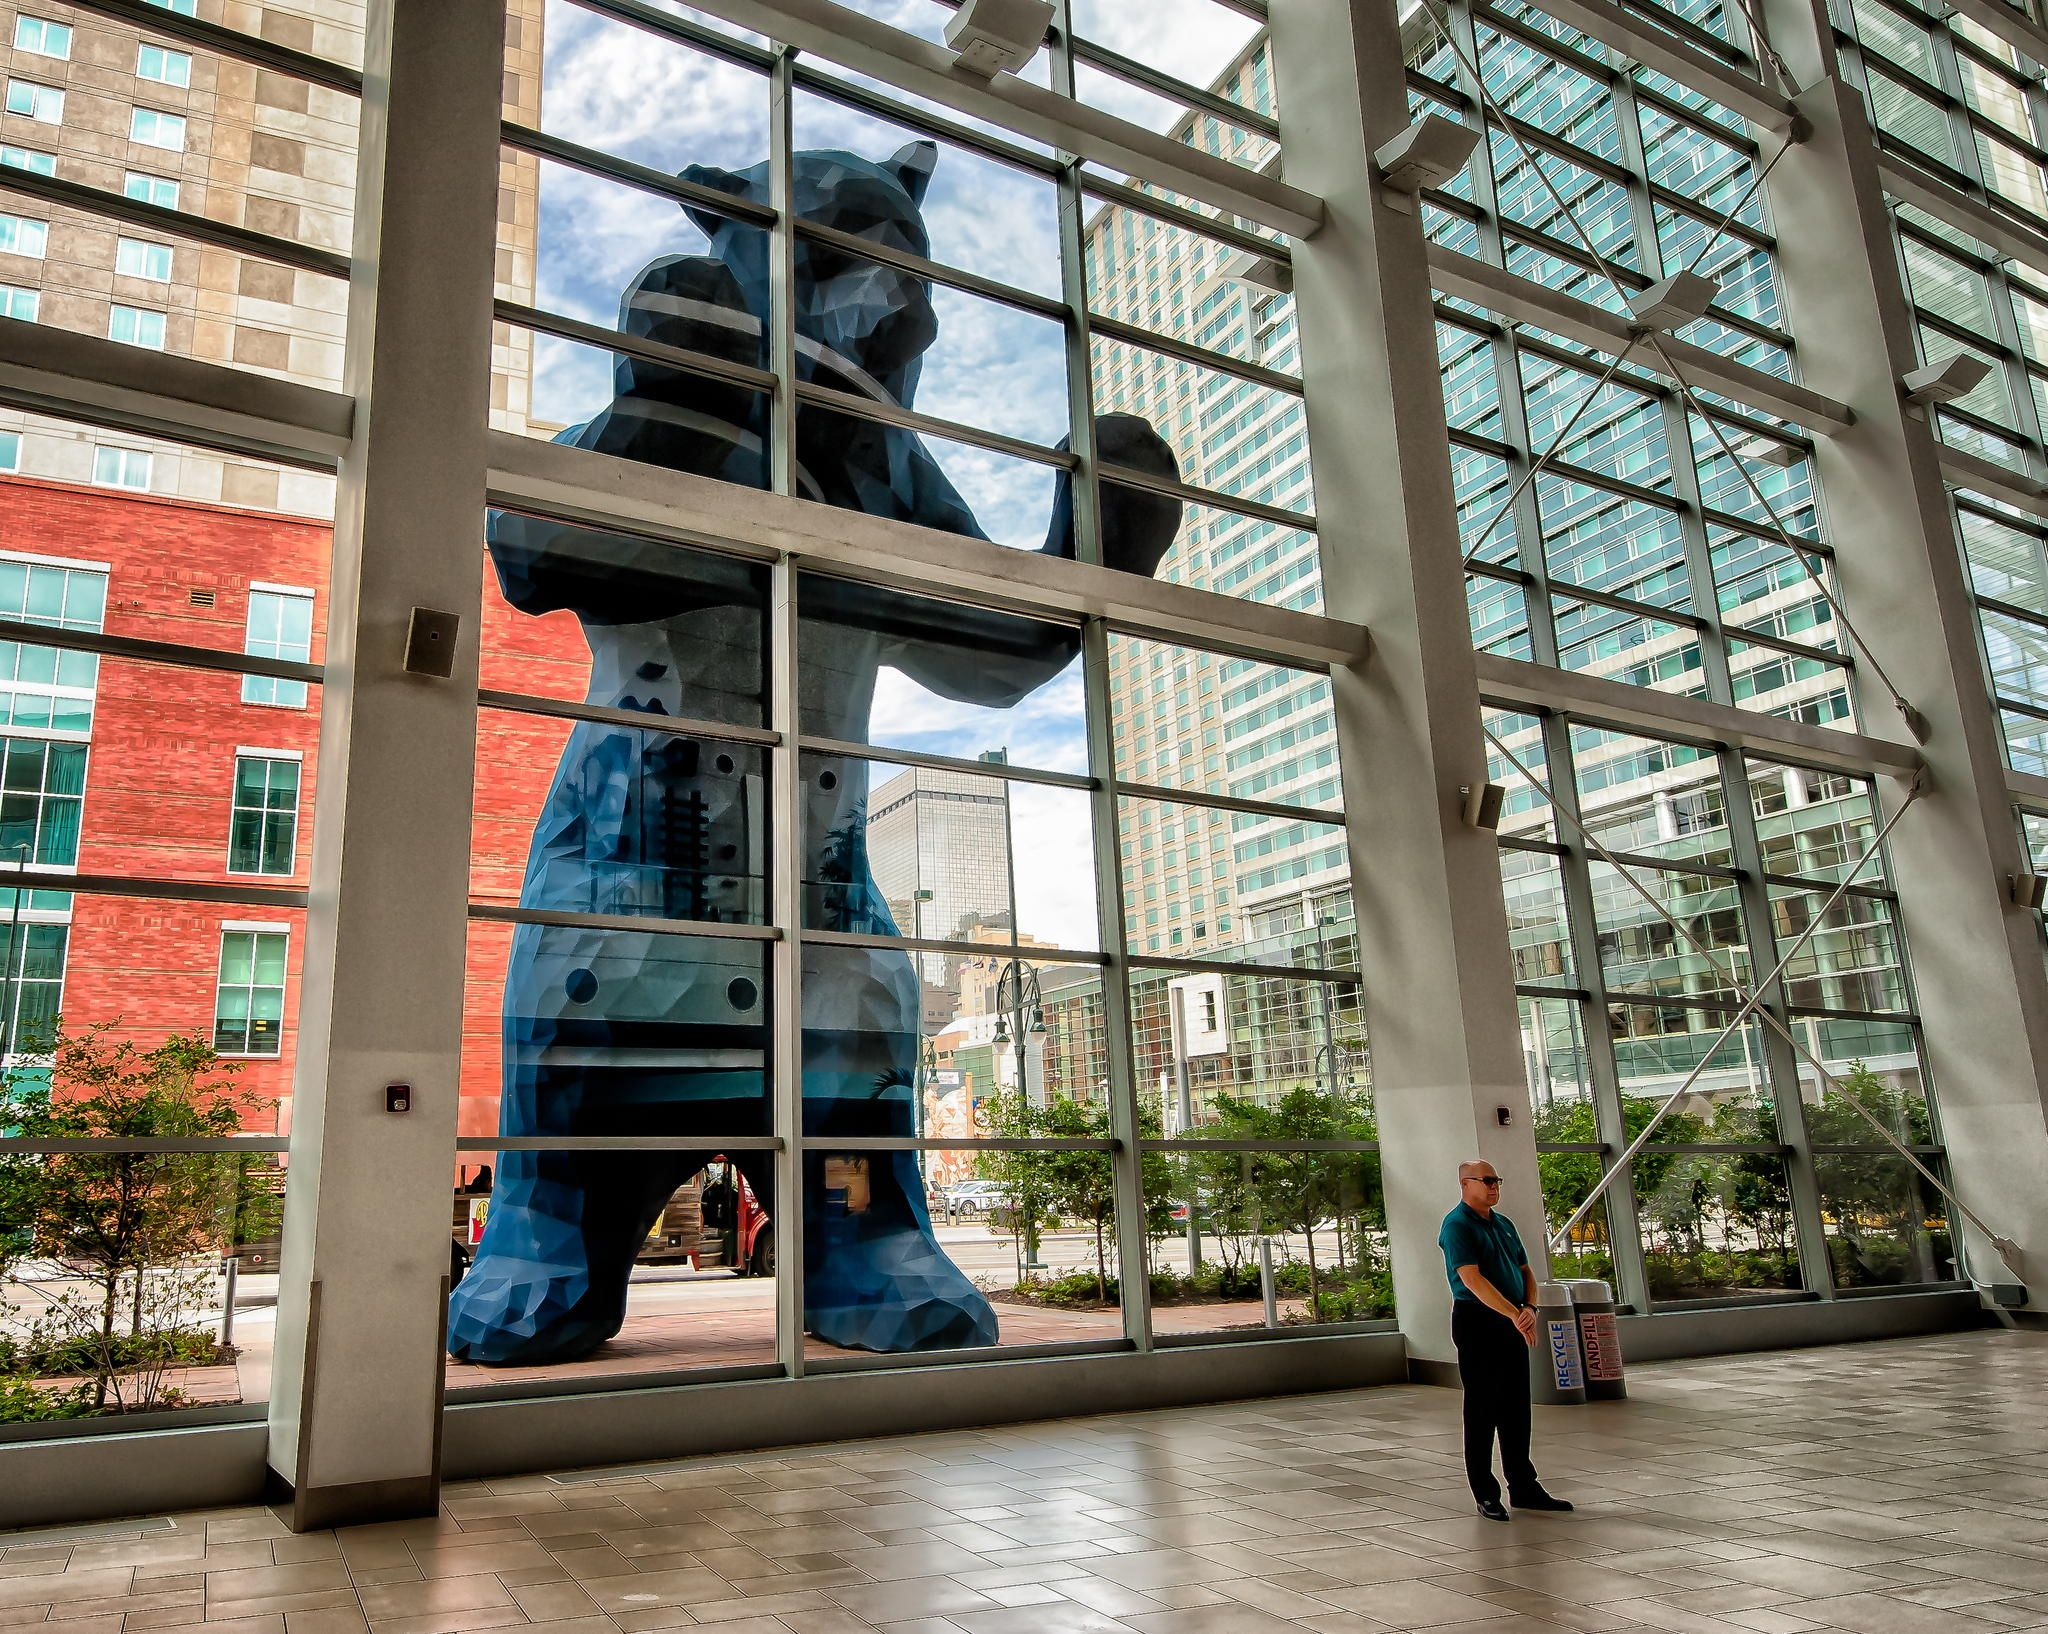 40-foot-tall Blue Bear sculpture outside the Denver Convention Center in Colorado. And despite appearances, the man is not a guard. He is just a tourist posing for a photo of himself in front of it